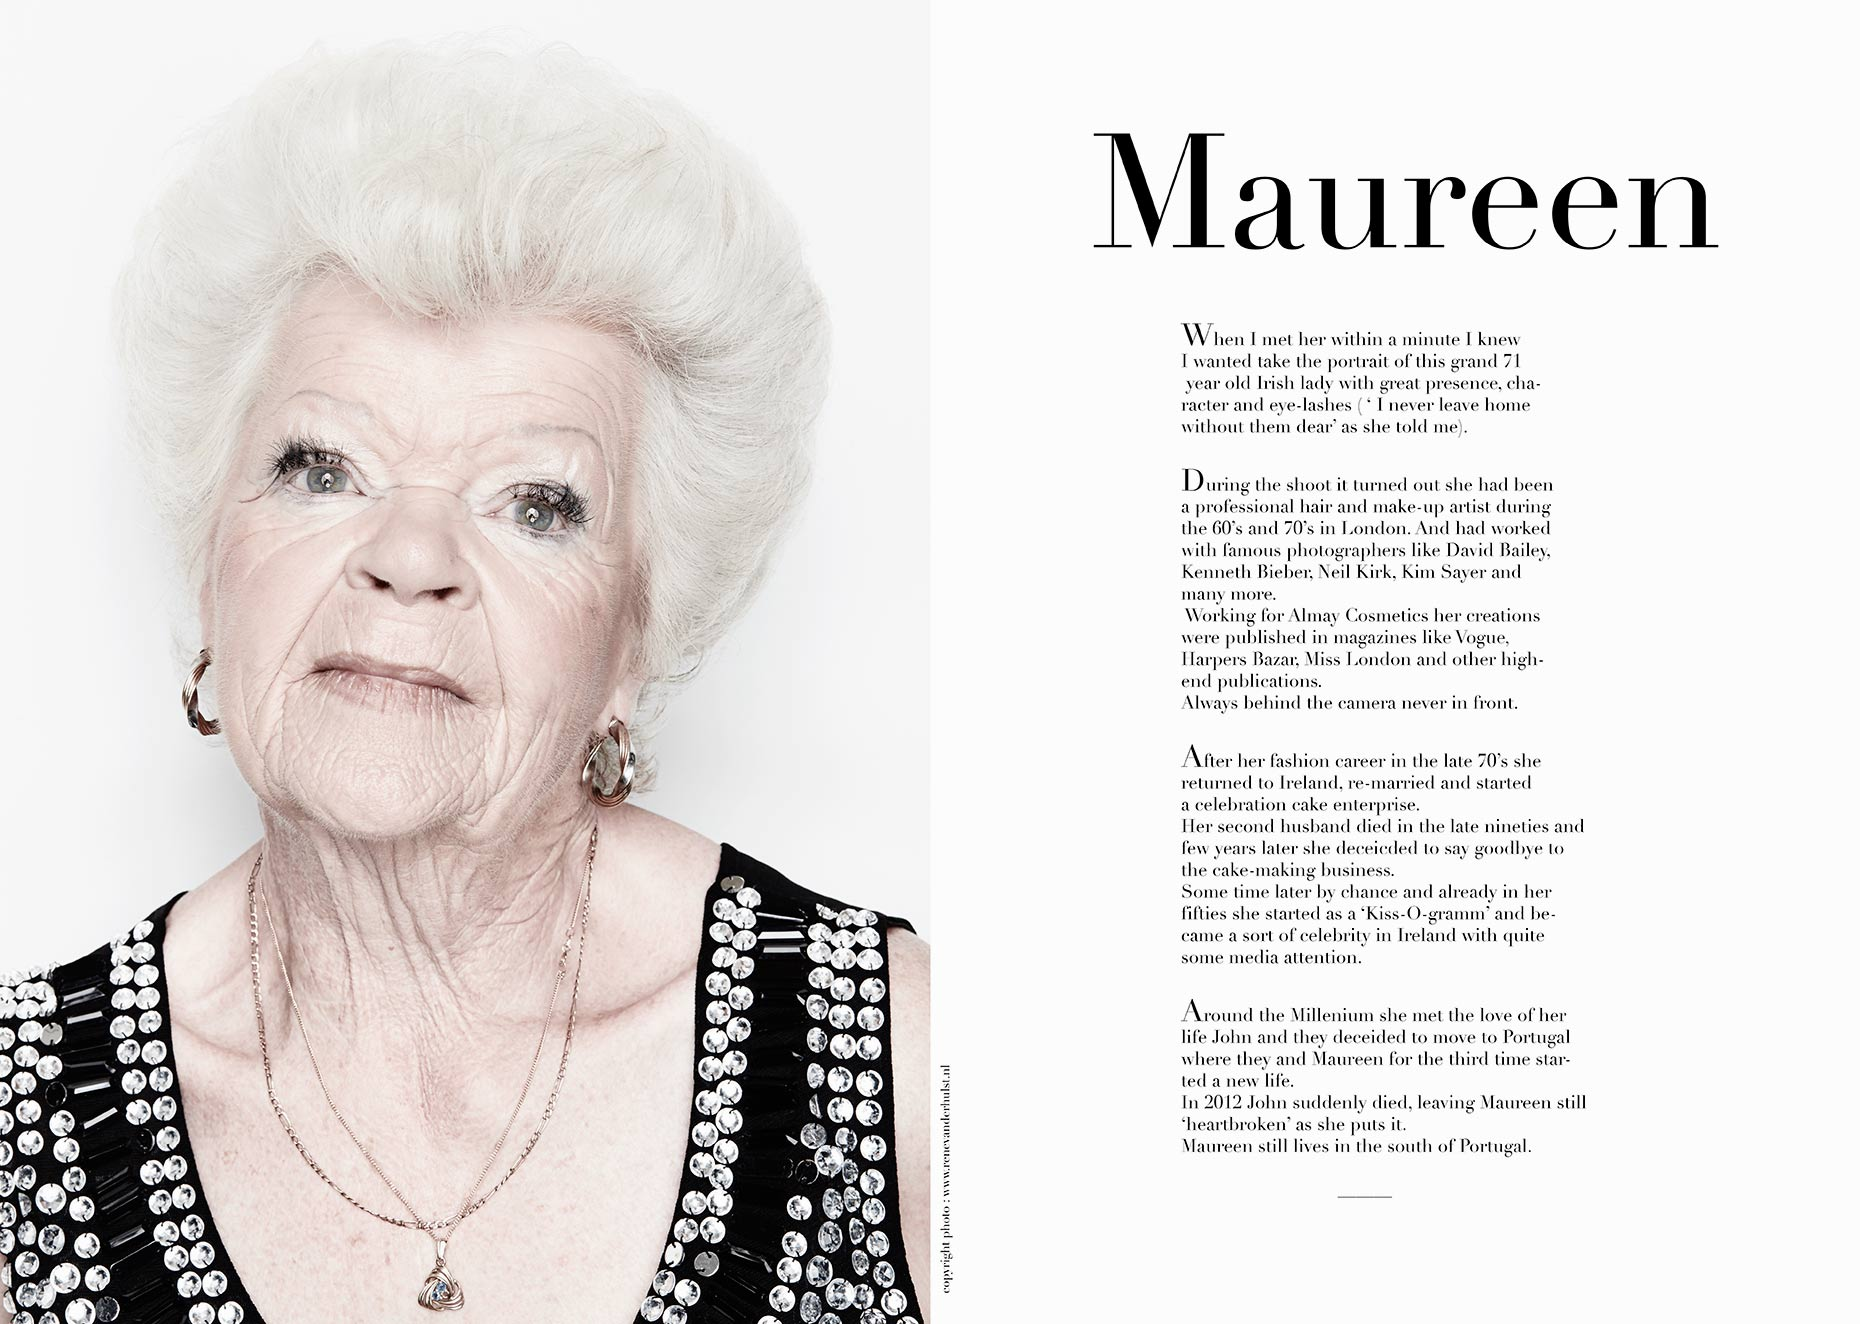 Maureen-spread-01